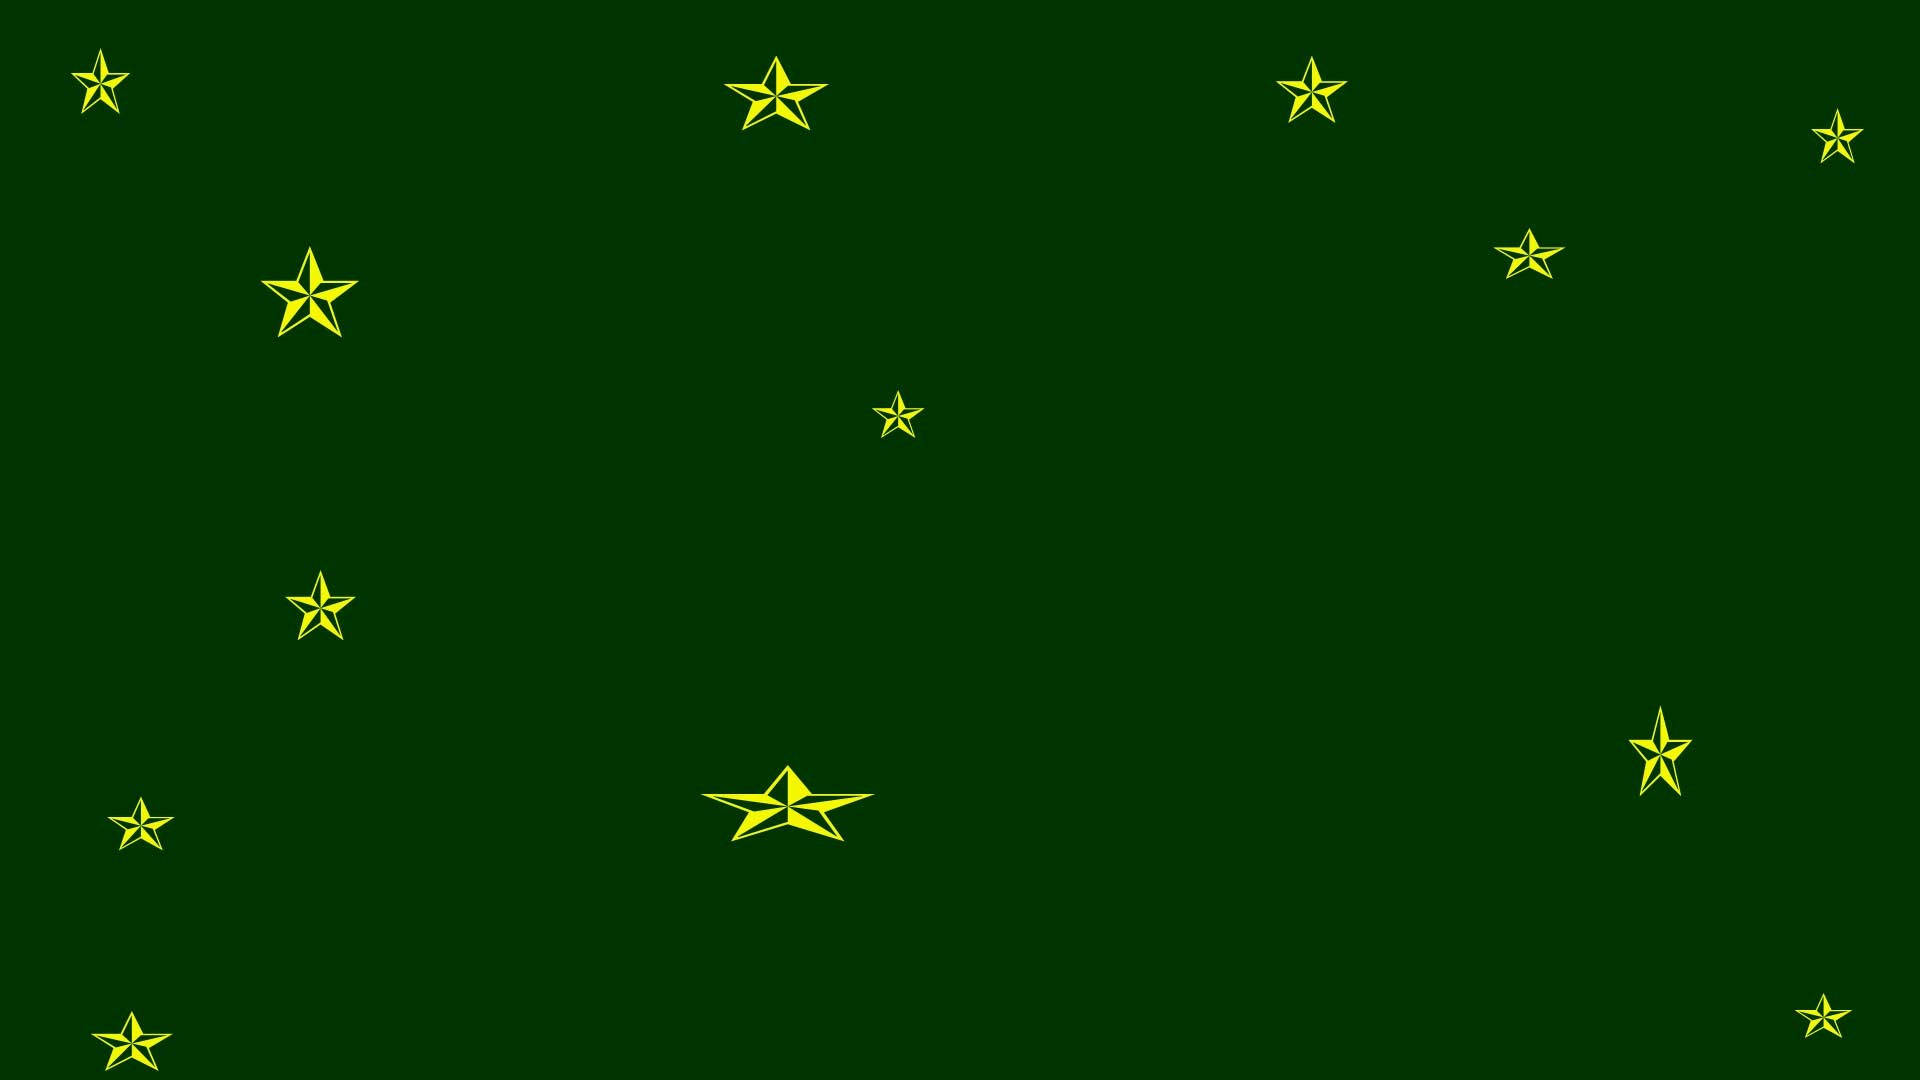 1920x1080 Dark Green Background, Gold Stars - Free